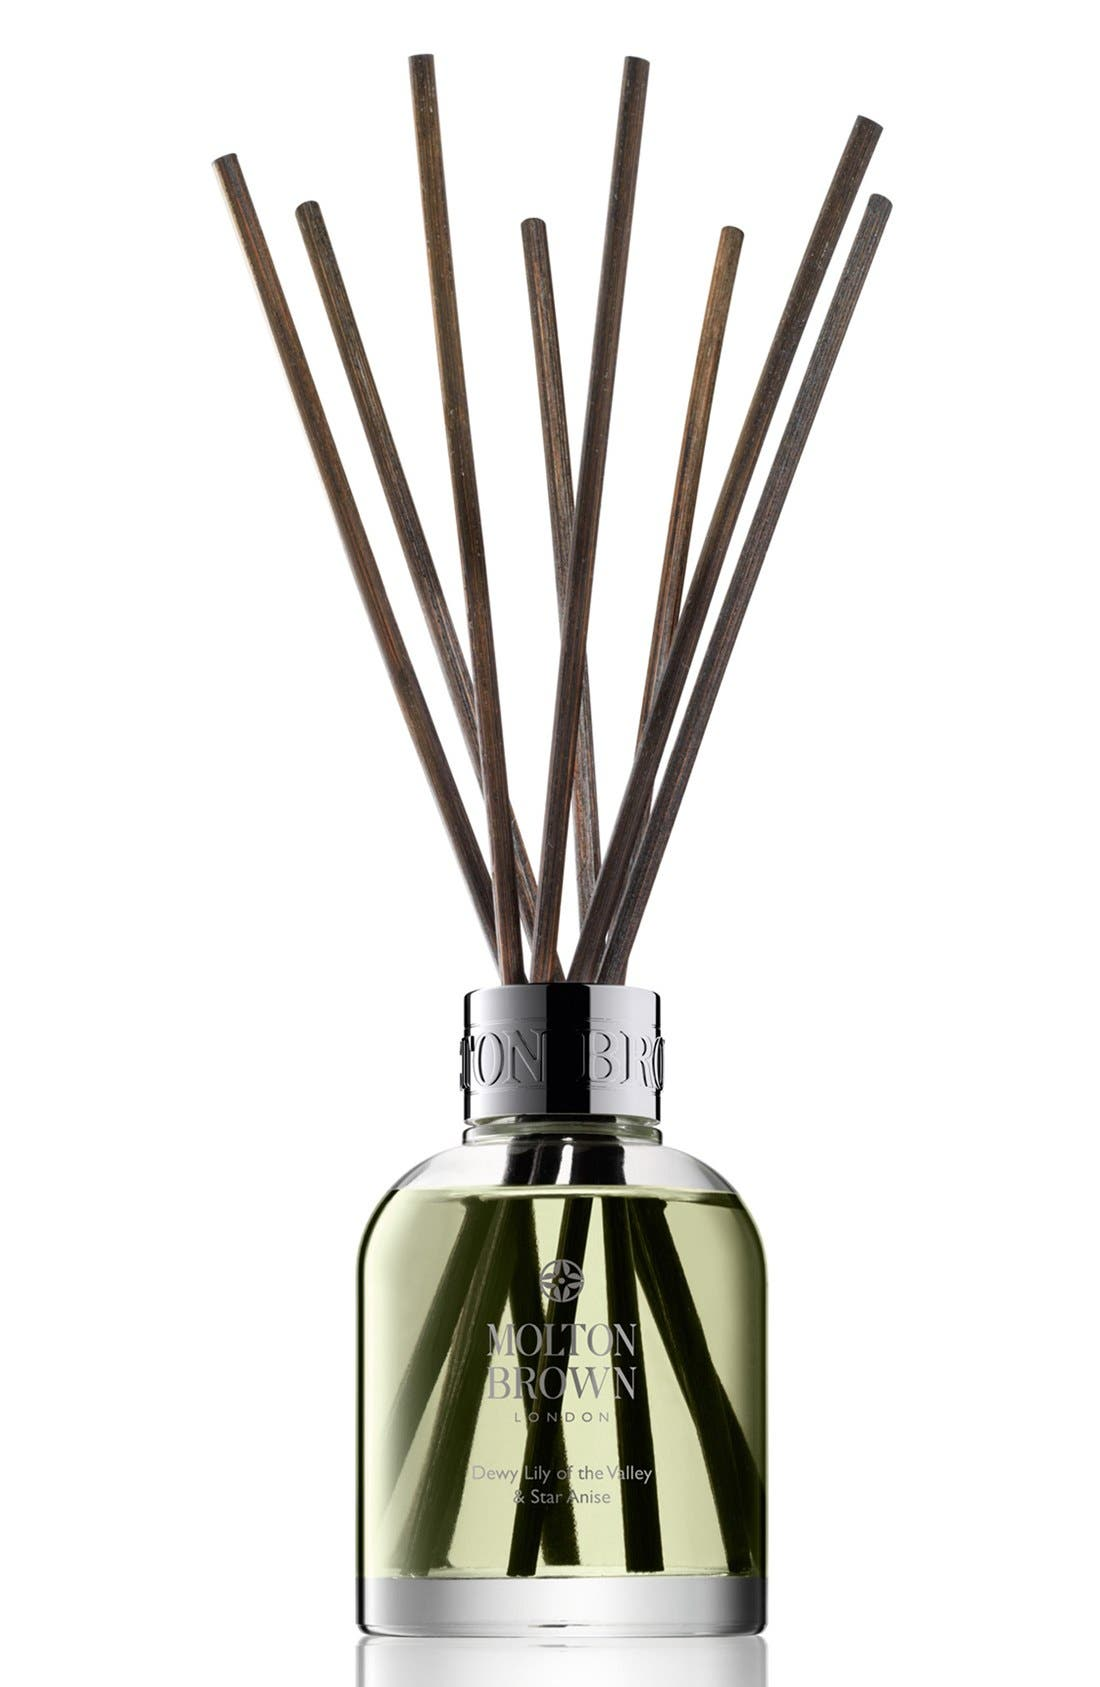 Main Image - MOLTON BROWN London 'Dewy Lily of the Valley & Star Anise' Aroma Reeds